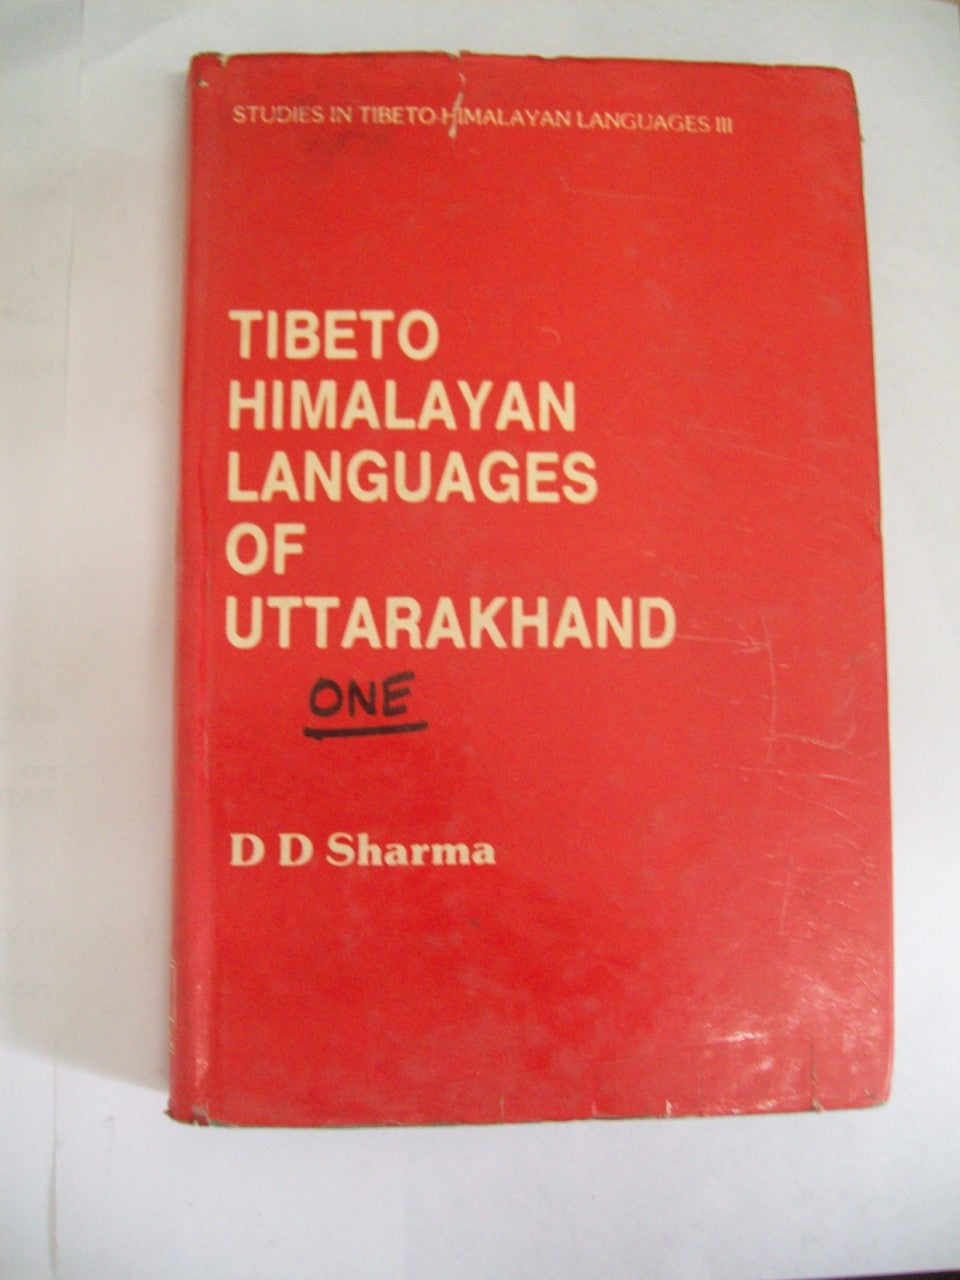 Tibeto-Himalayan Languages Of Uttarakhand (2 Parts)